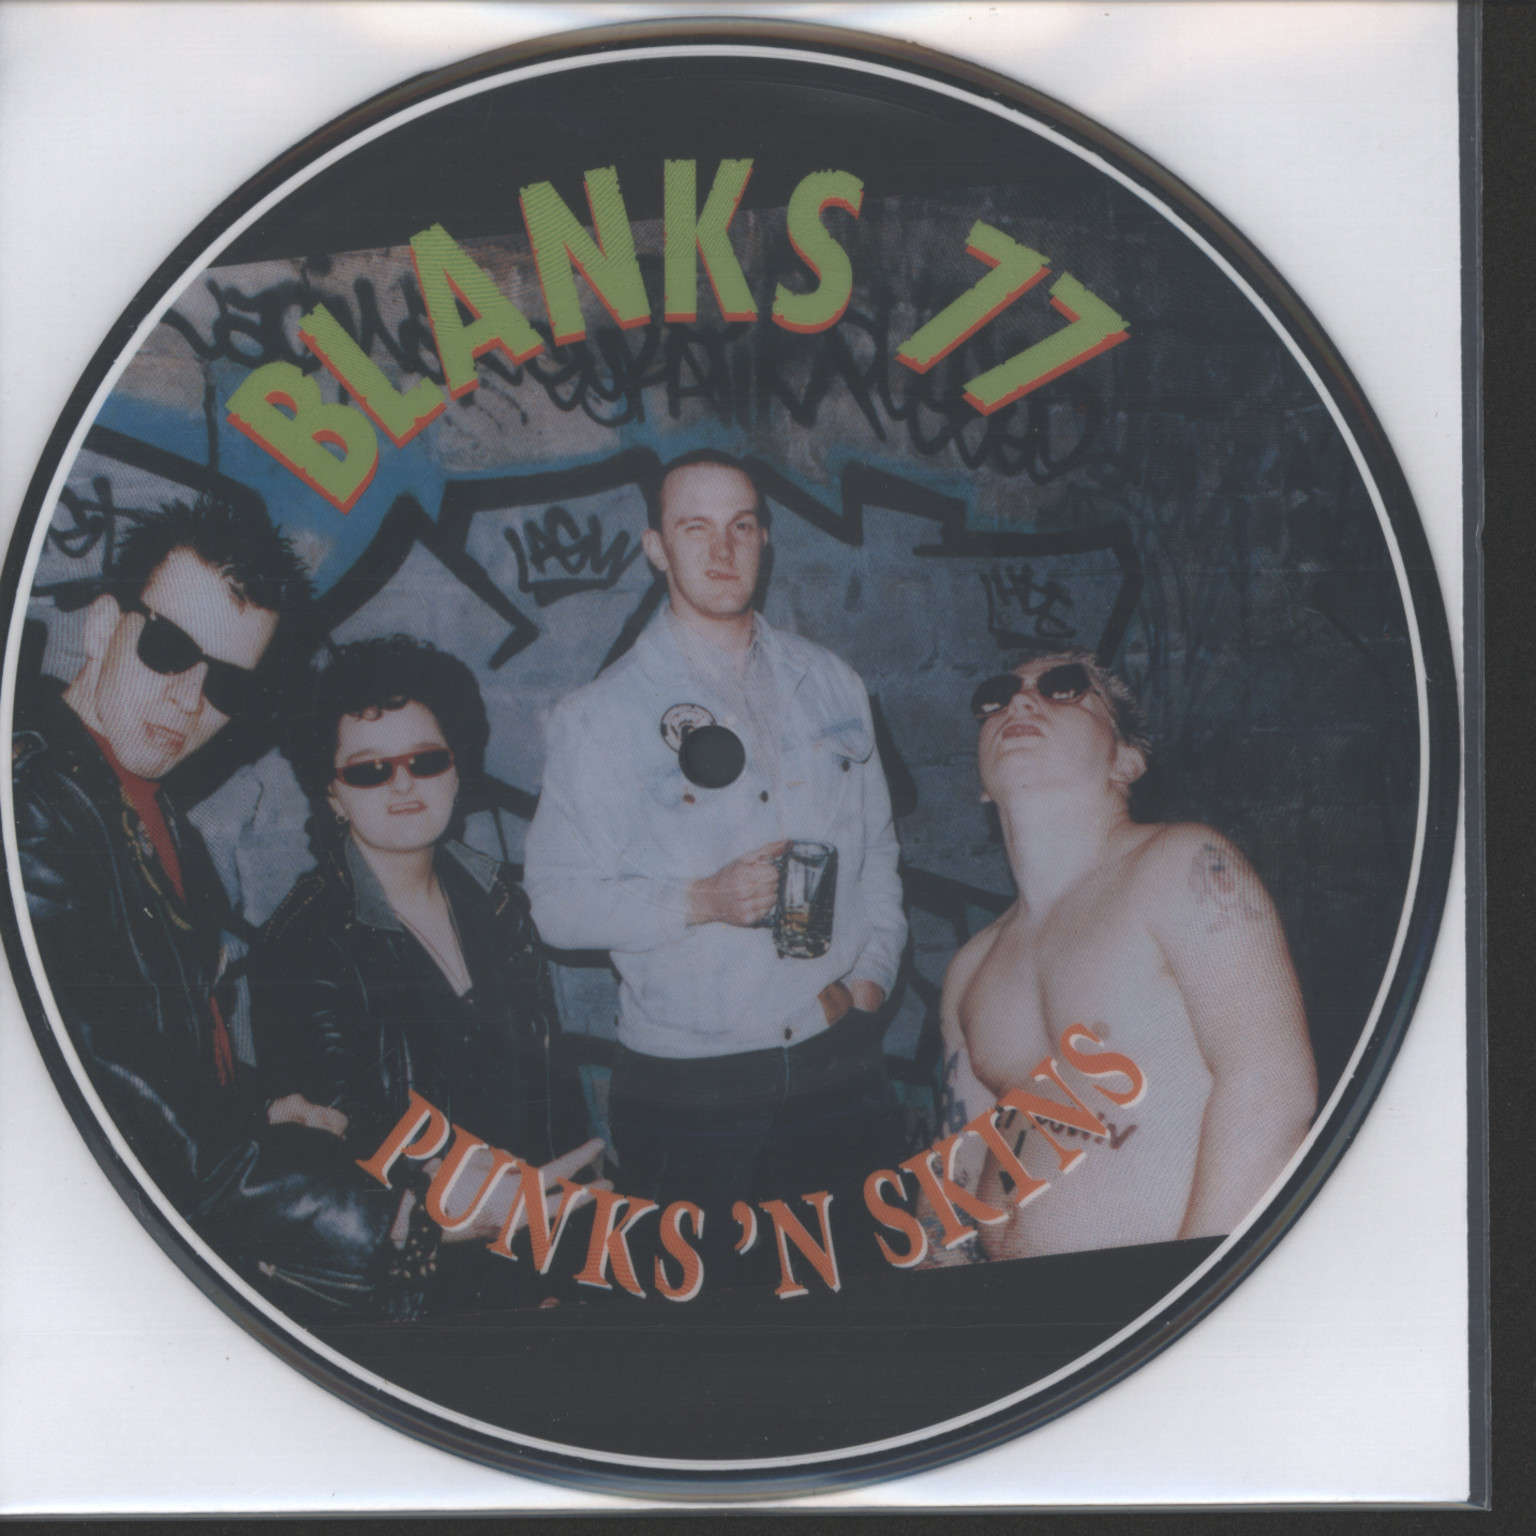 "Blanks 77: Punks 'N Skins, 7"" Single (Vinyl)"